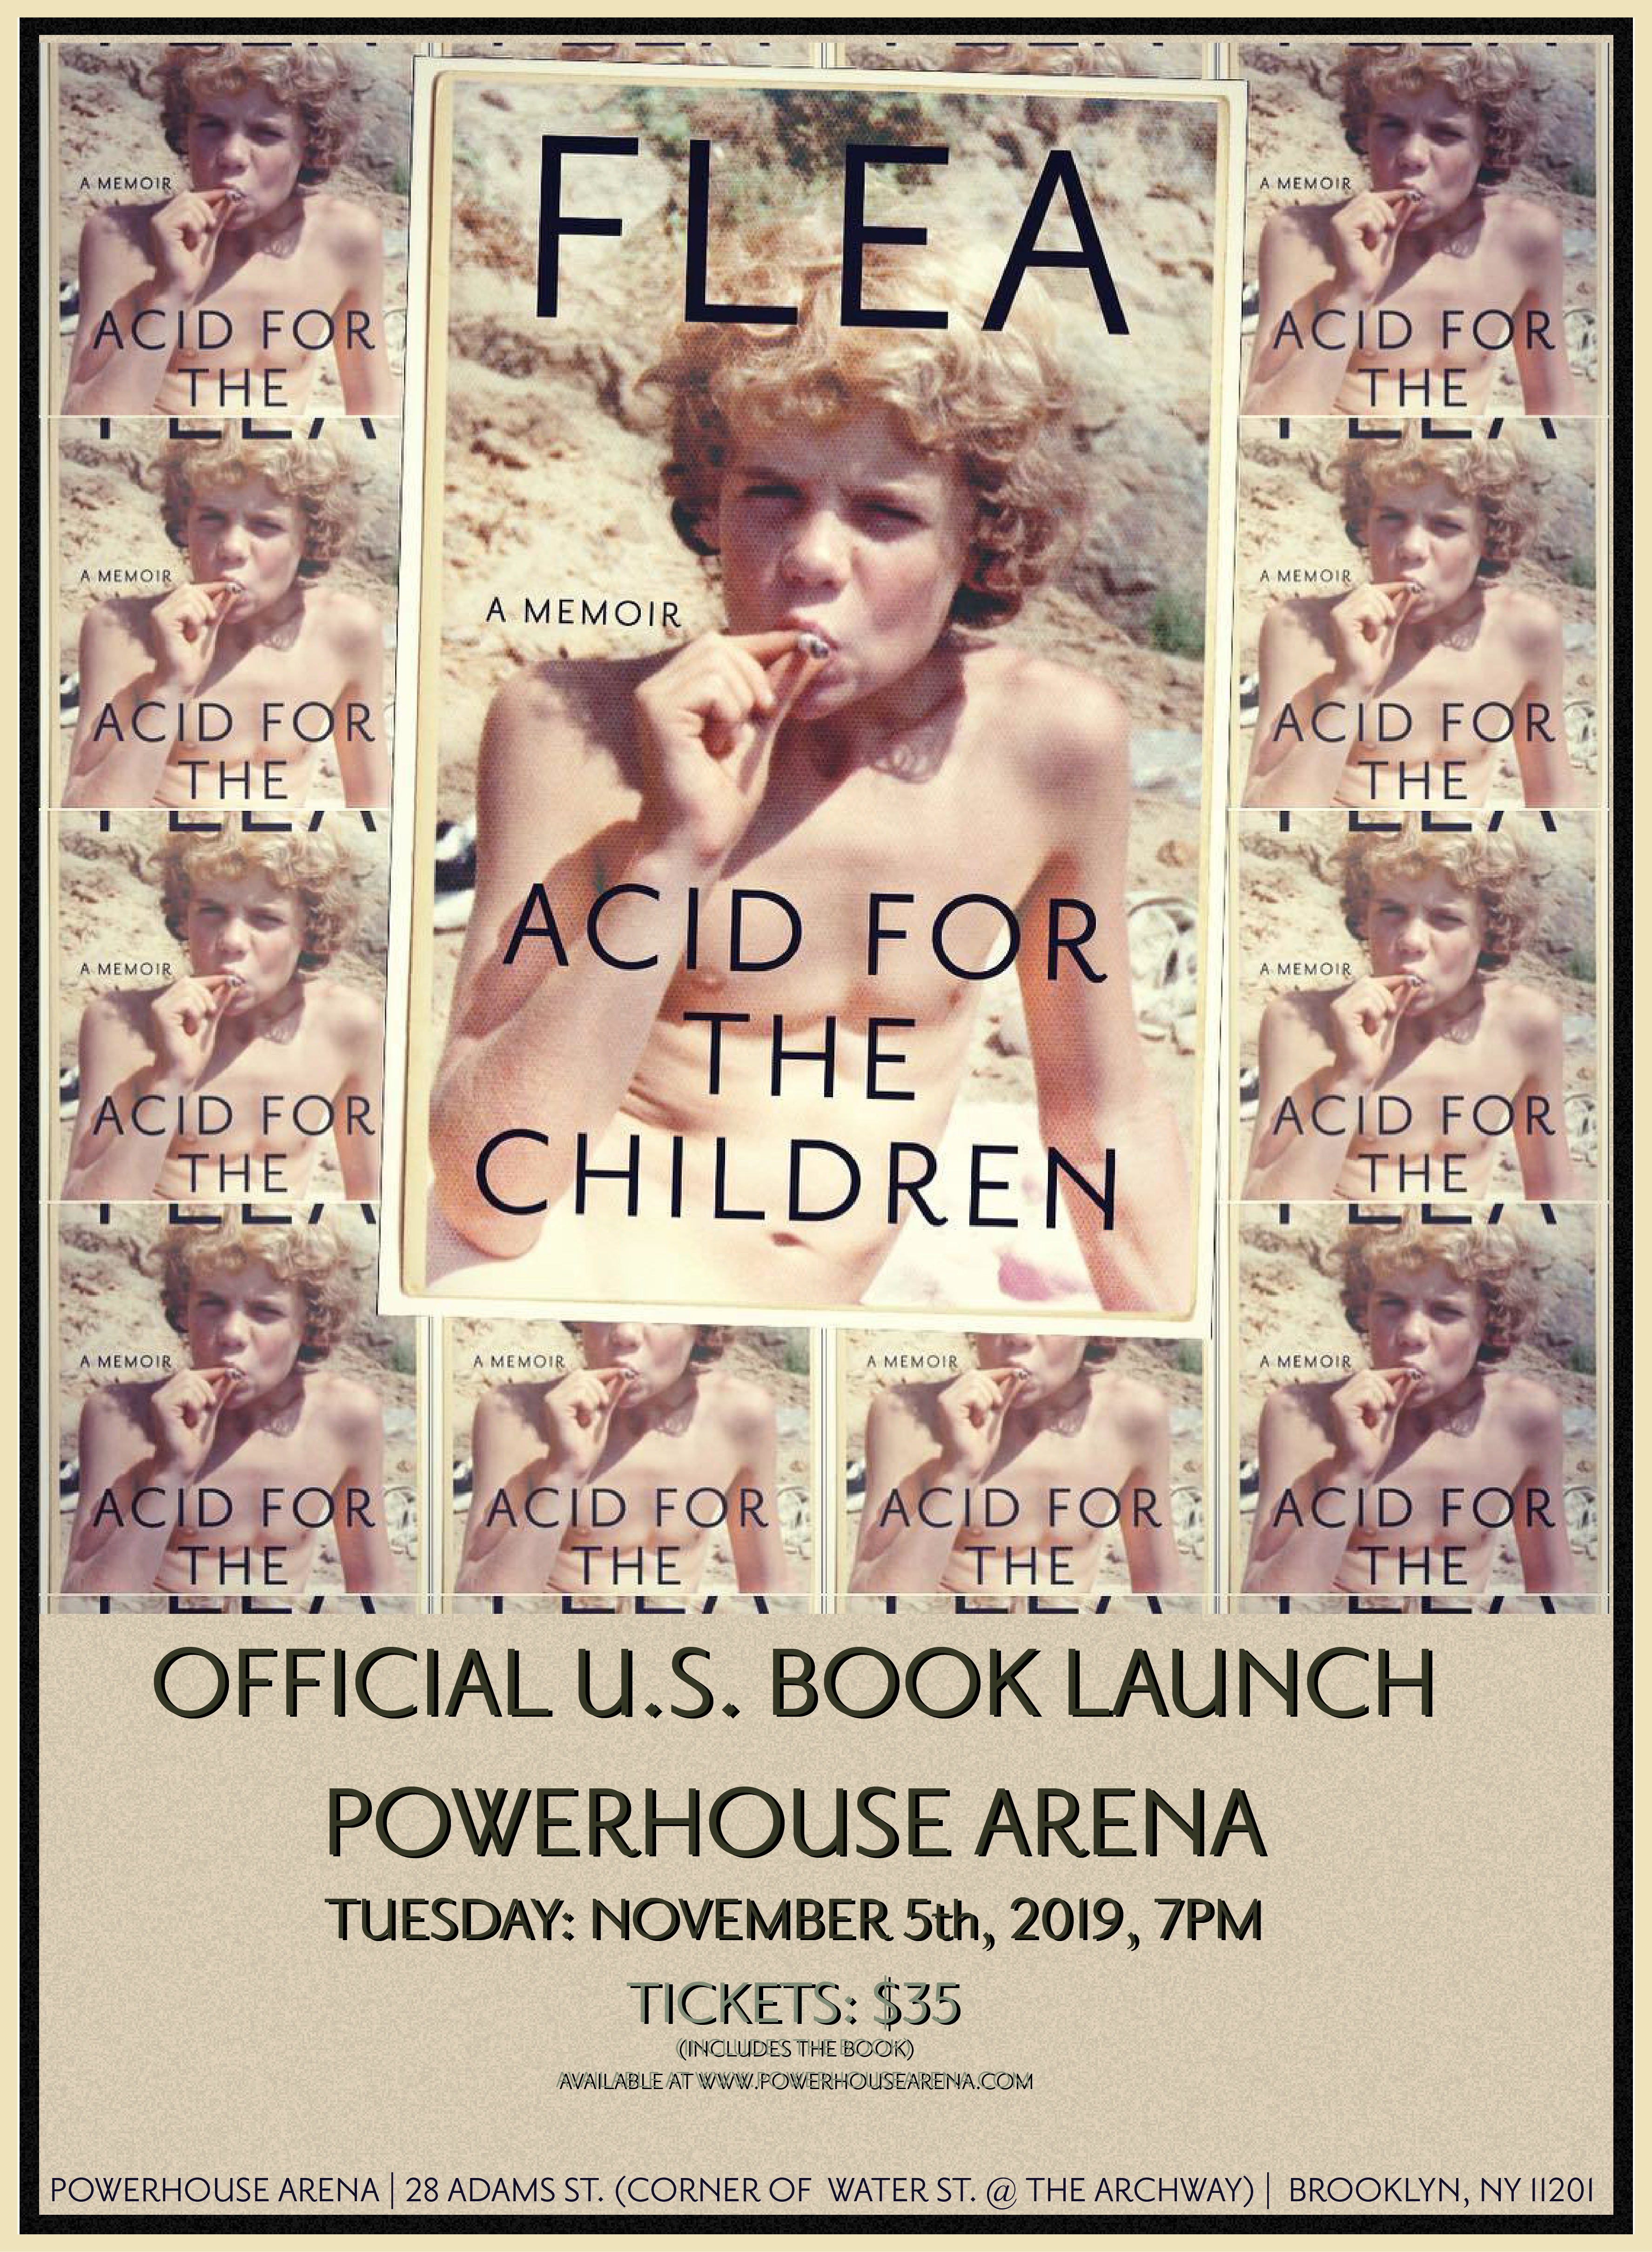 Powerhouse Arena and Rough Trade present the official U.S. book launch of Acid For The Children by Flea